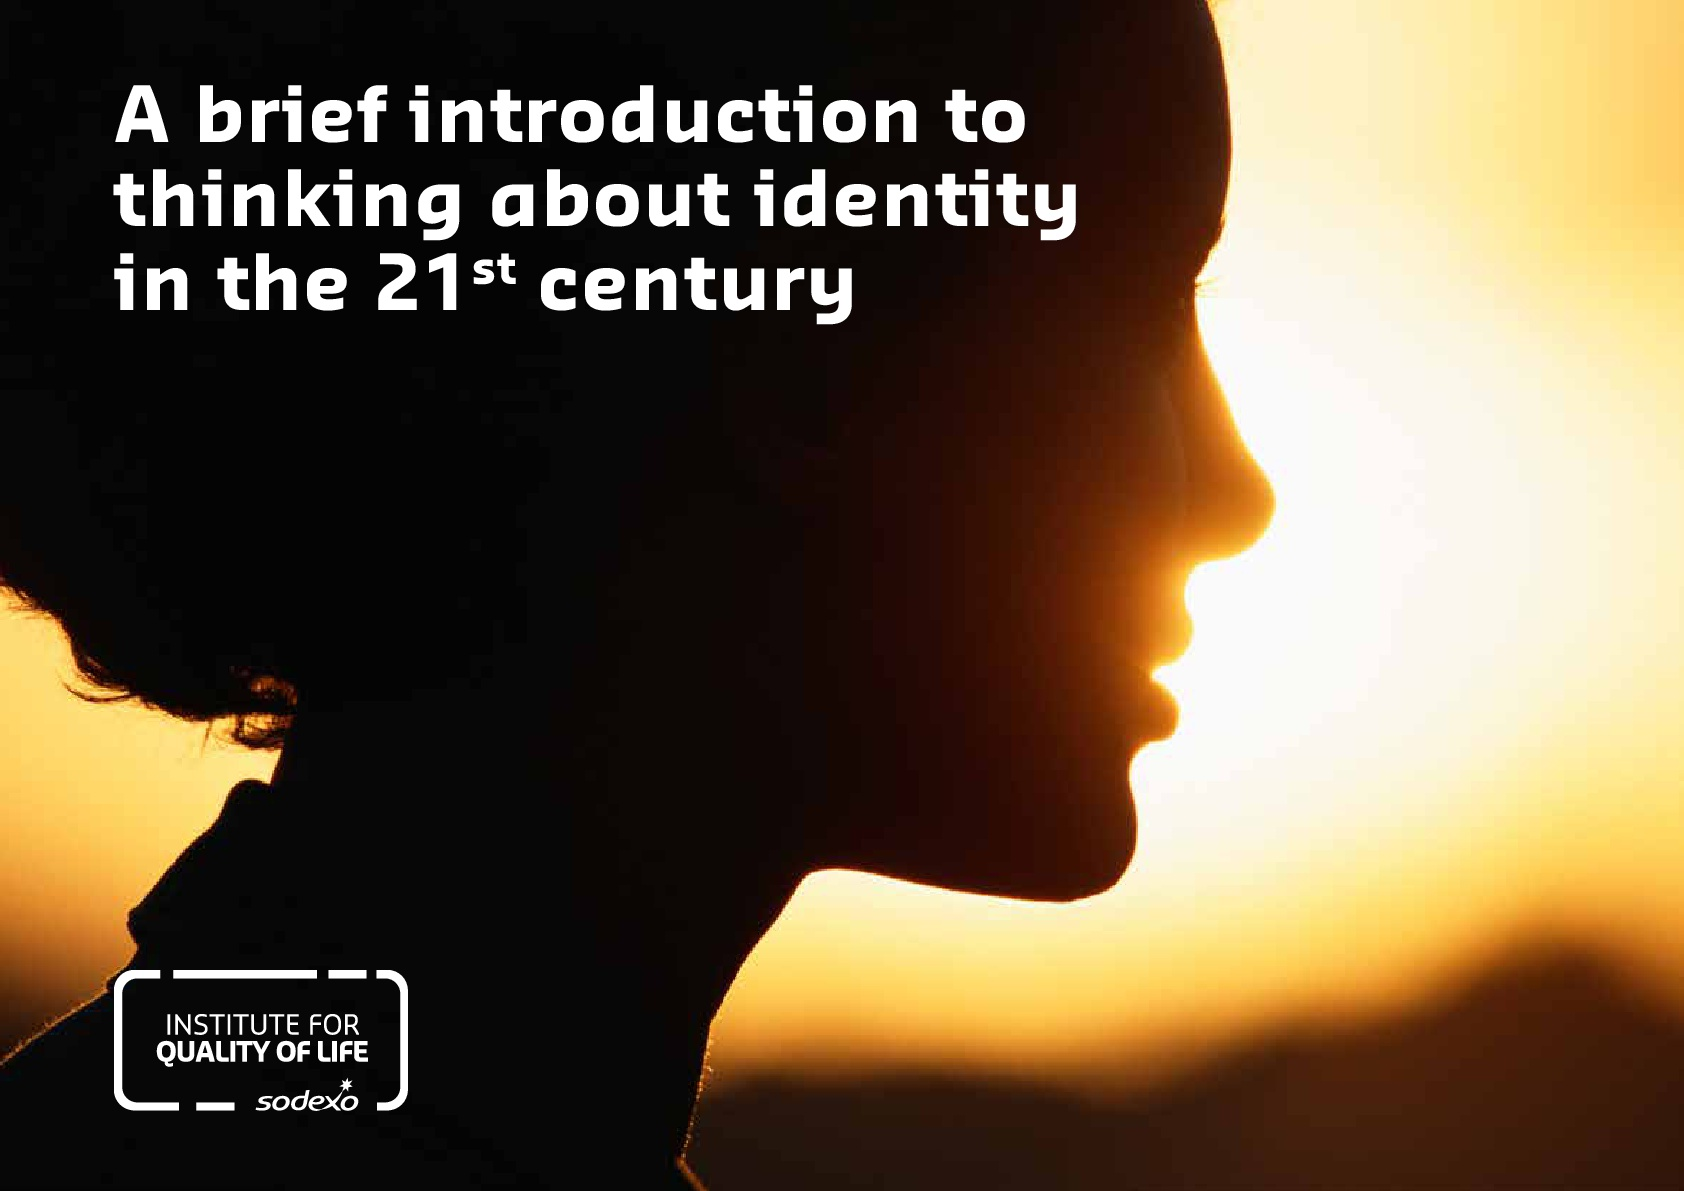 A brief introduction to thinking about identity in the 21st century